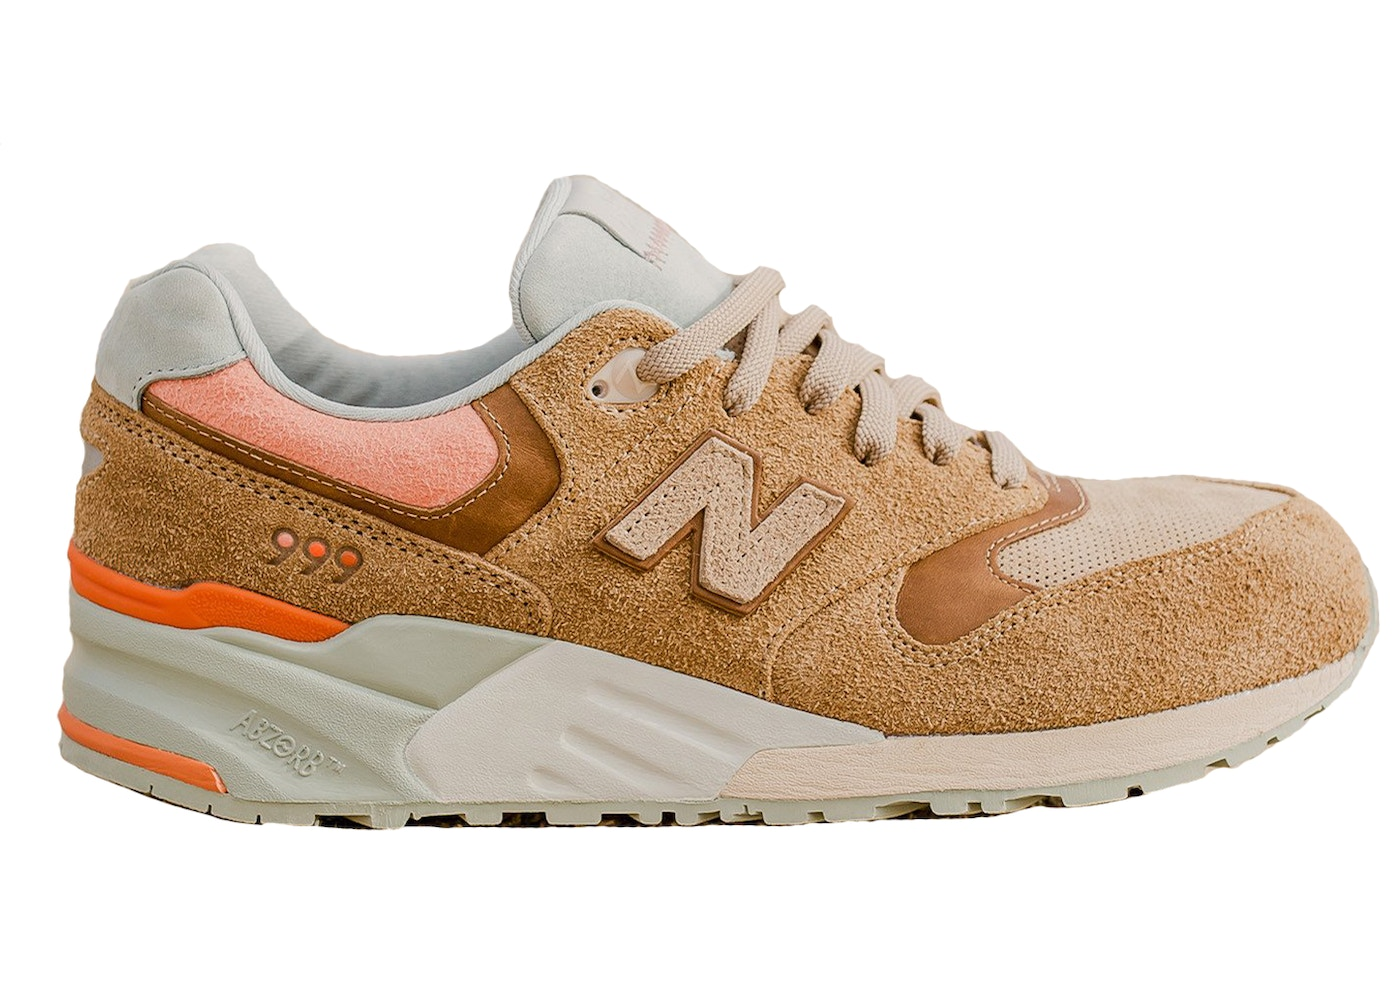 new balance 999 cml packer shoes